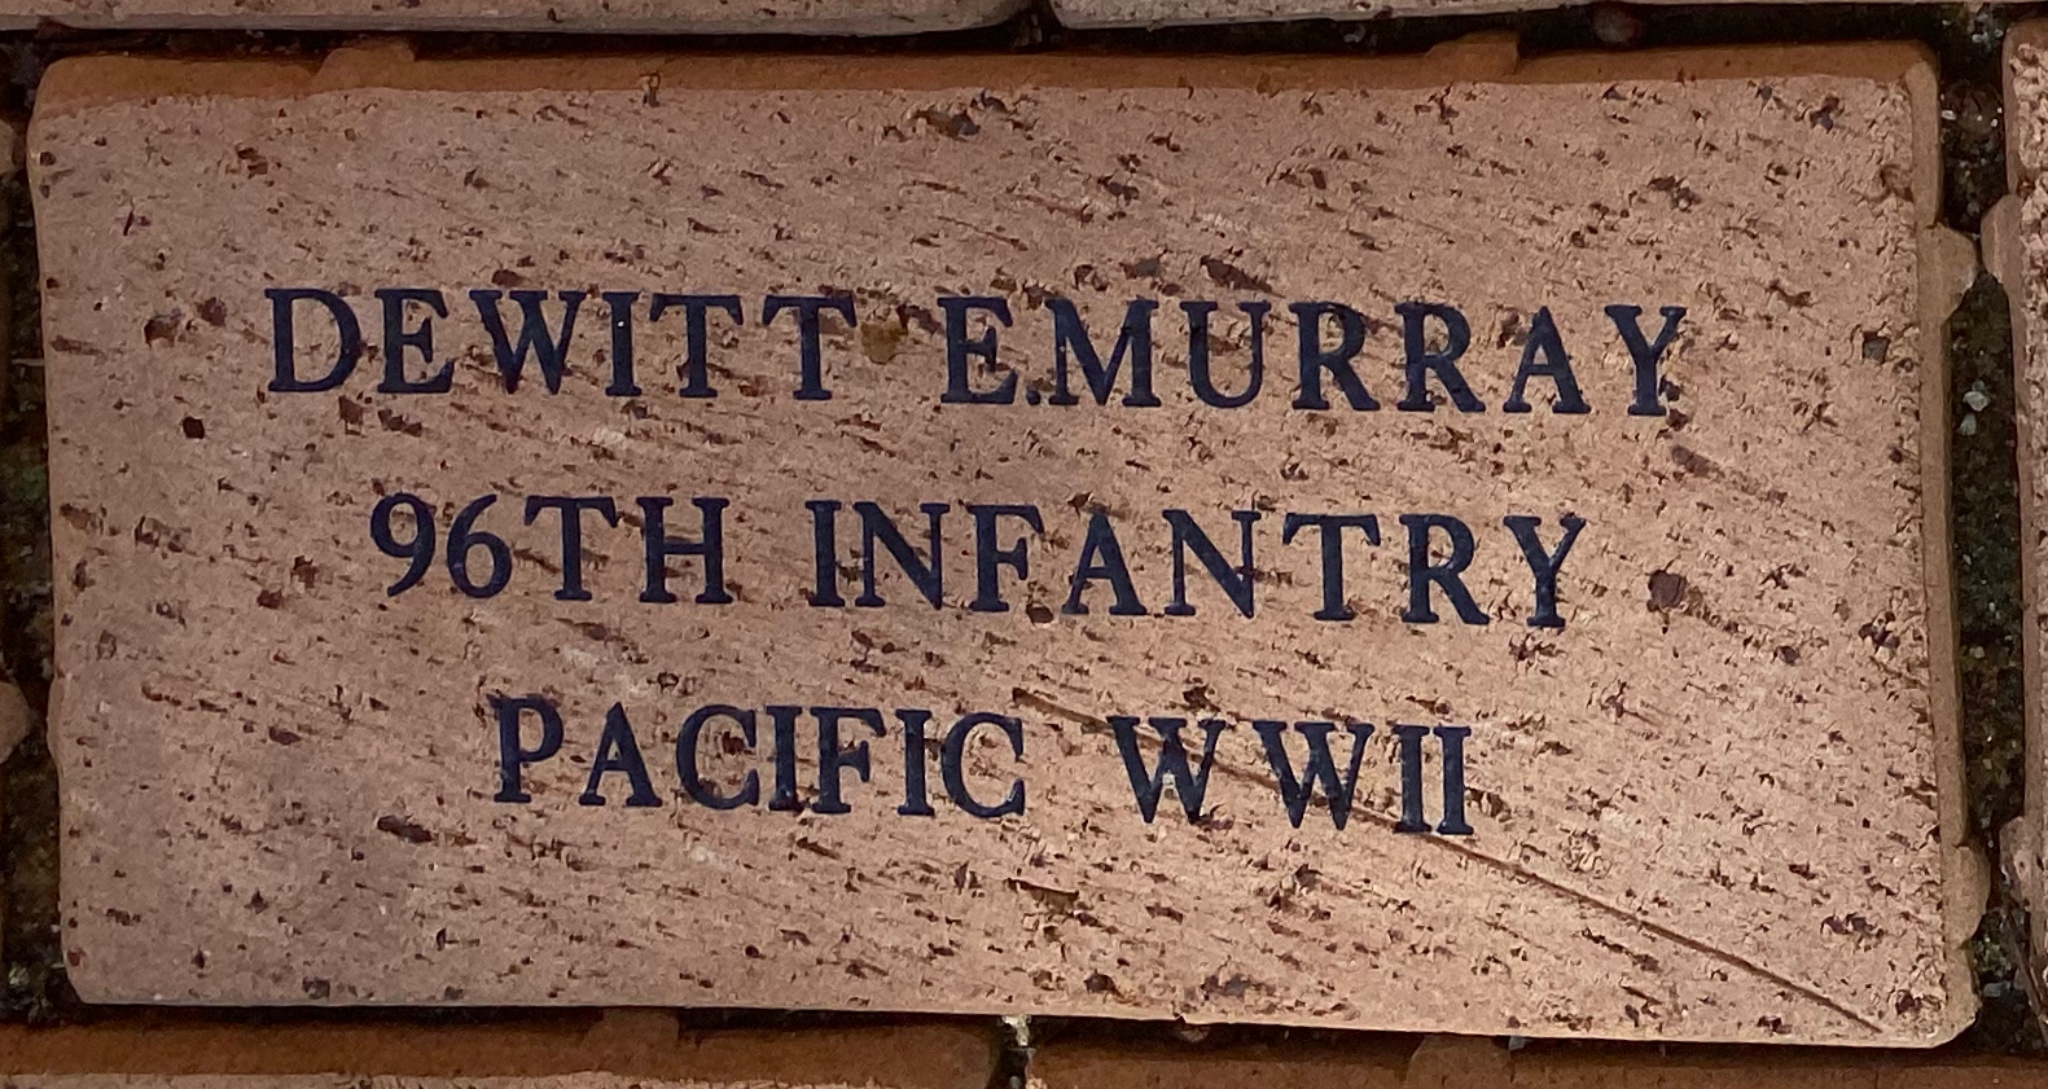 DEWITT E.MURRAY 96TH INFANTRY PACIFIC WWII